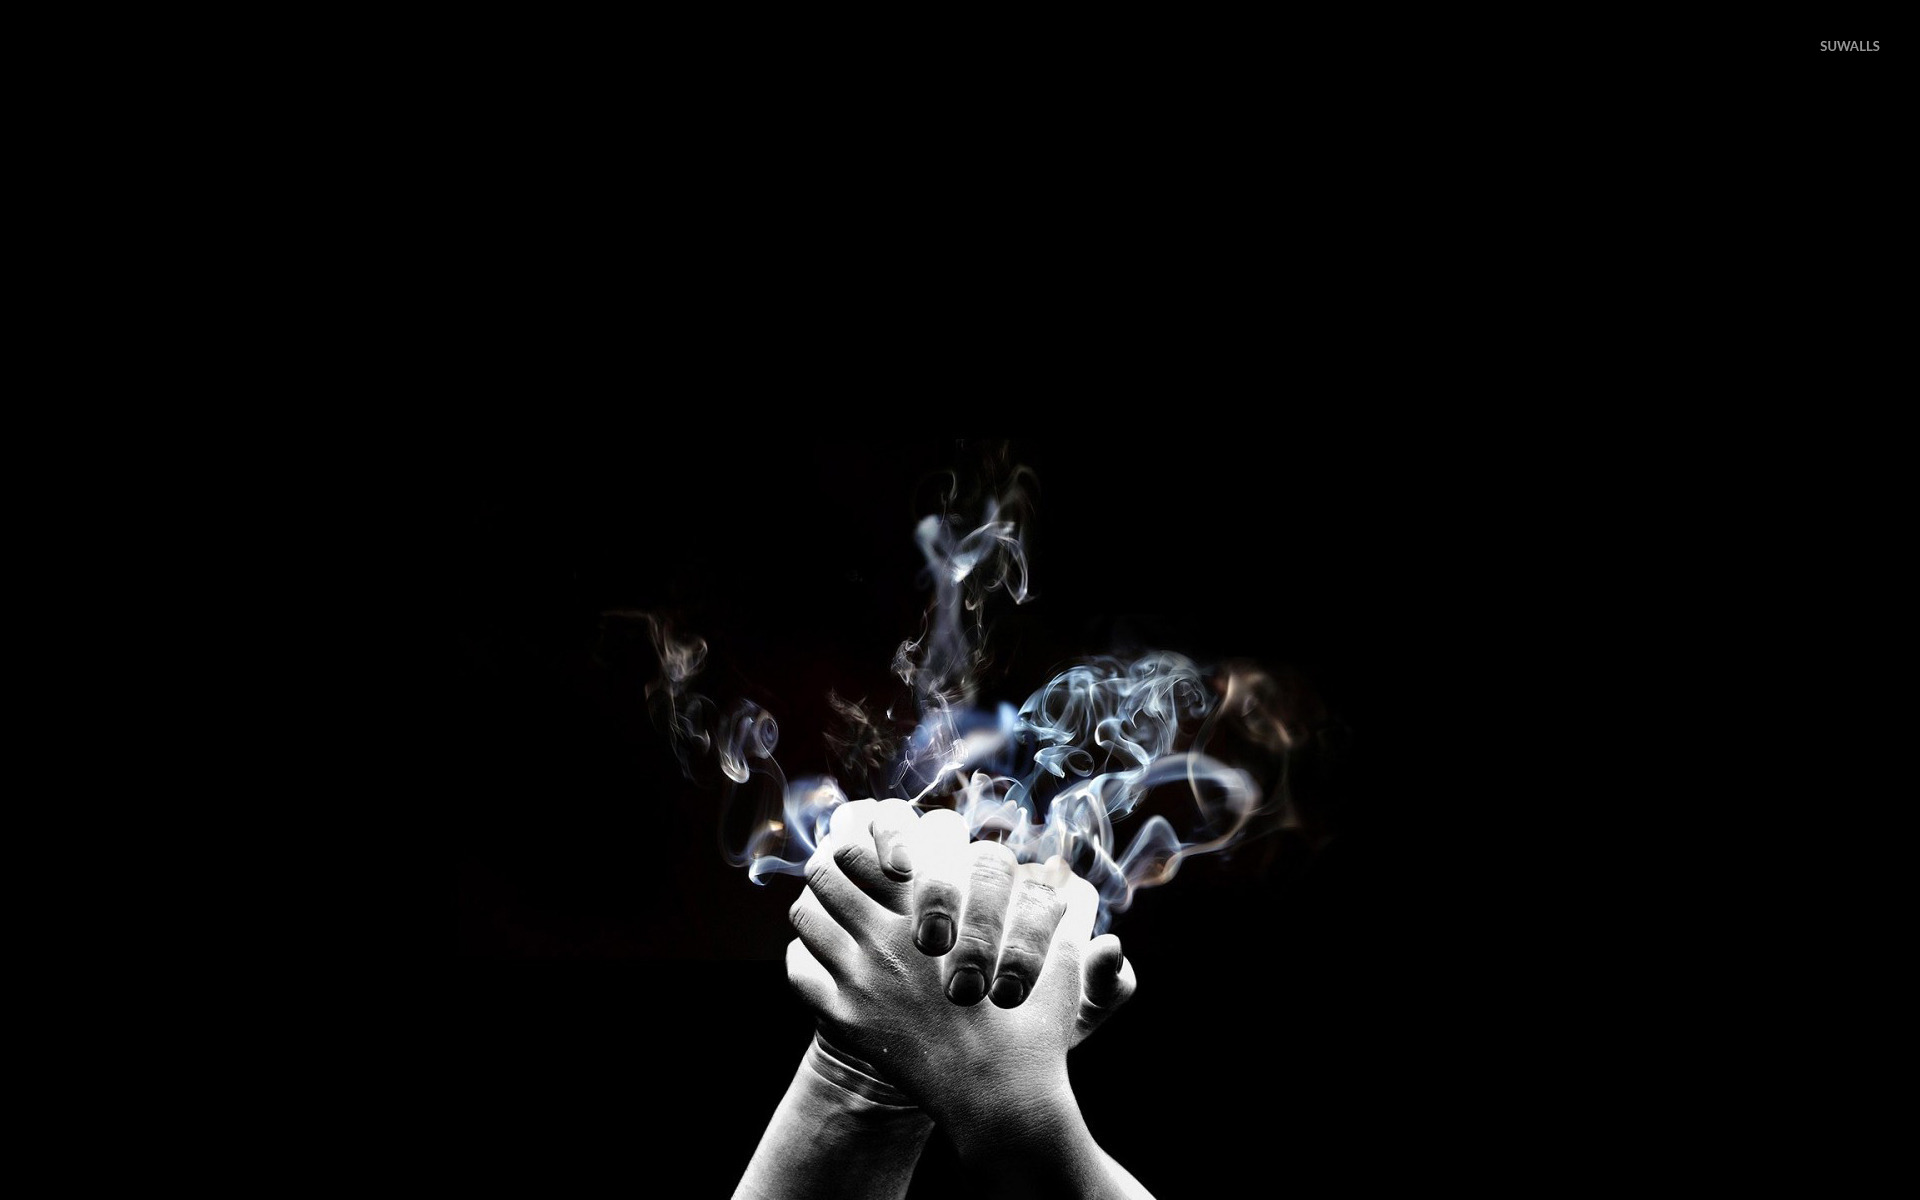 Smoking Hands wallpaper   Digital Art wallpapers   14458 1920x1200